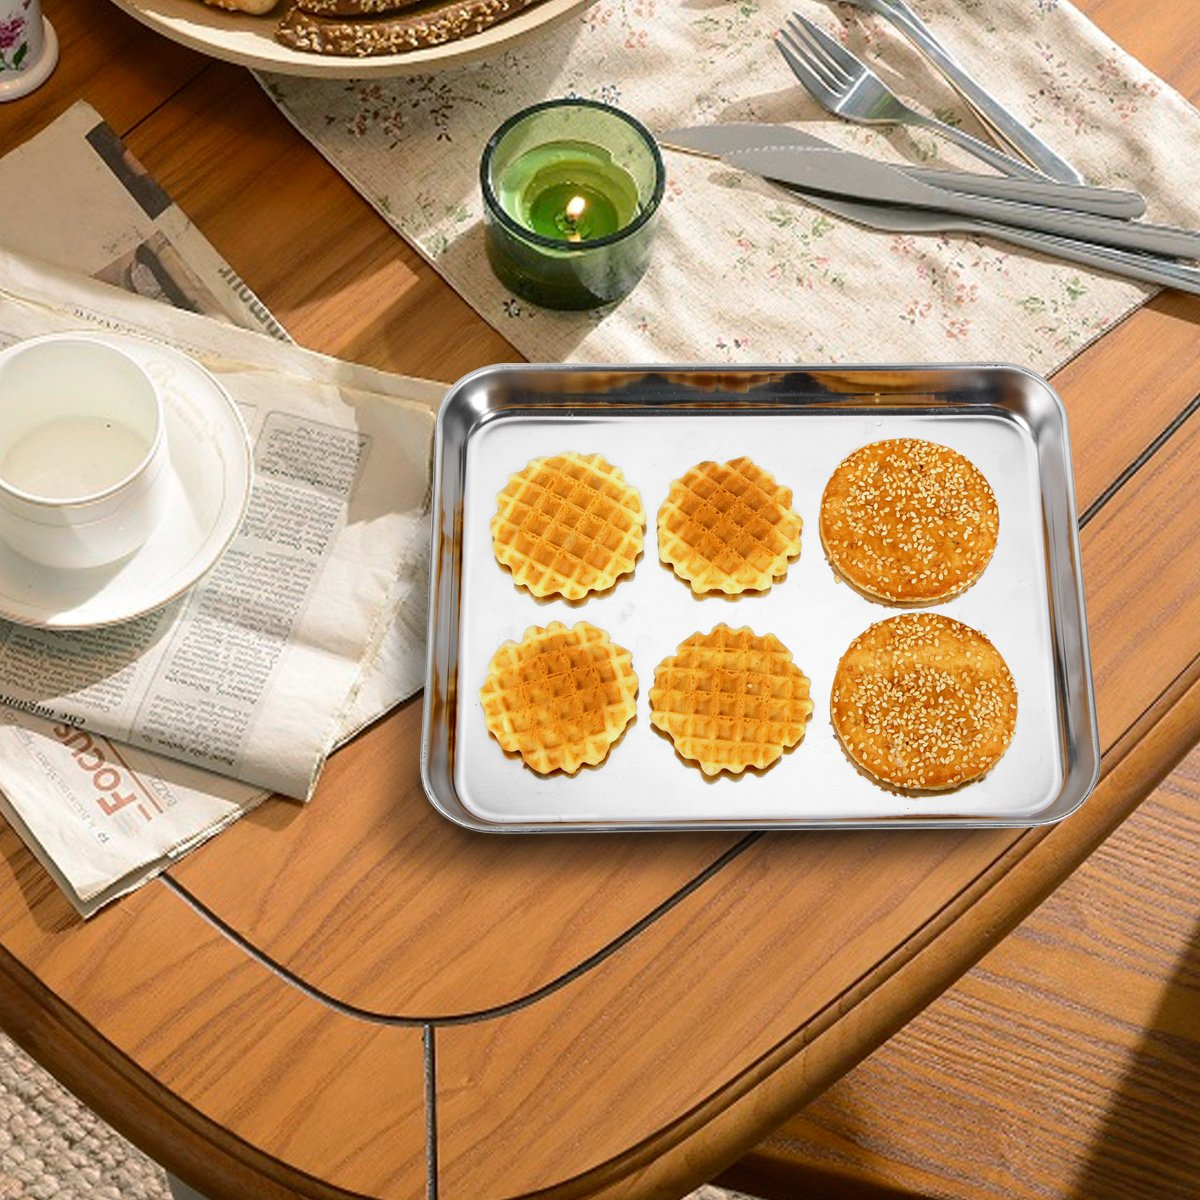 Stainless Steel Baking Sheets, HKJ Chef Baking Pans & Cookie Sheets for Oven & Mini Toaster Oven Tray Pans & Non Toxic & Healthy,Superior Mirror & Easy Clean by HKJ Chef (Image #7)